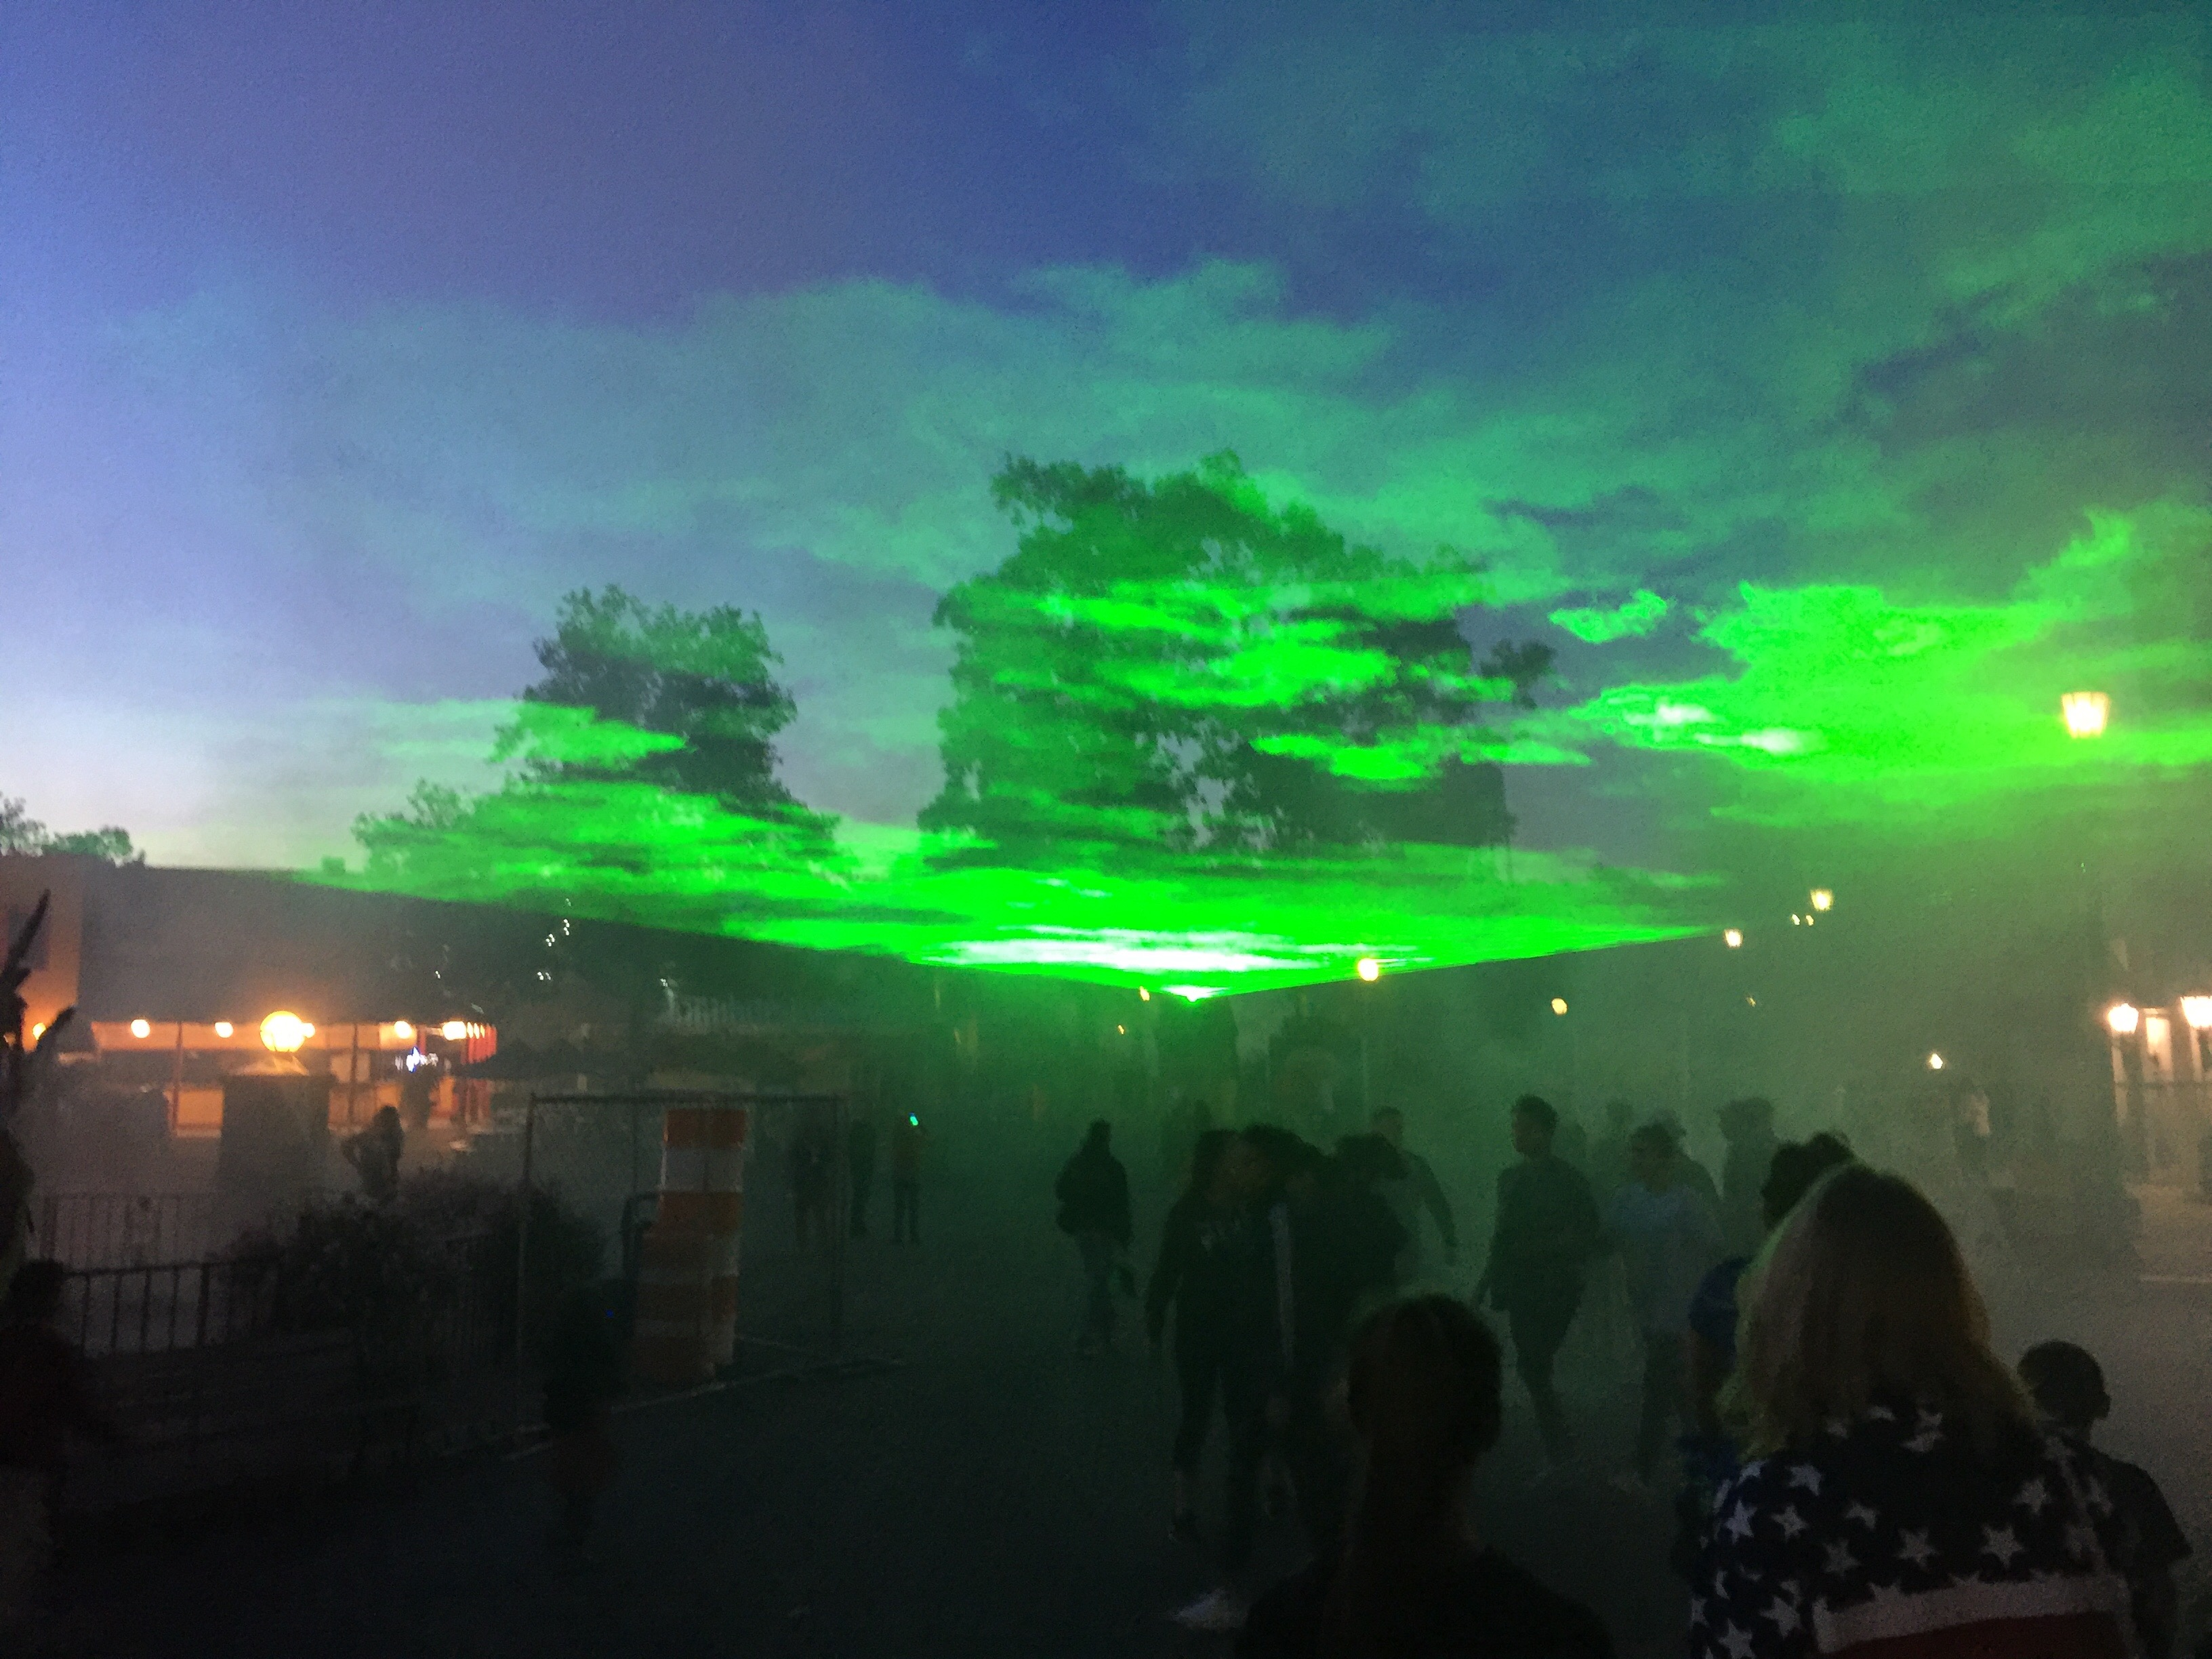 SIX FLAGS GREAT ADVENTURE LASERS